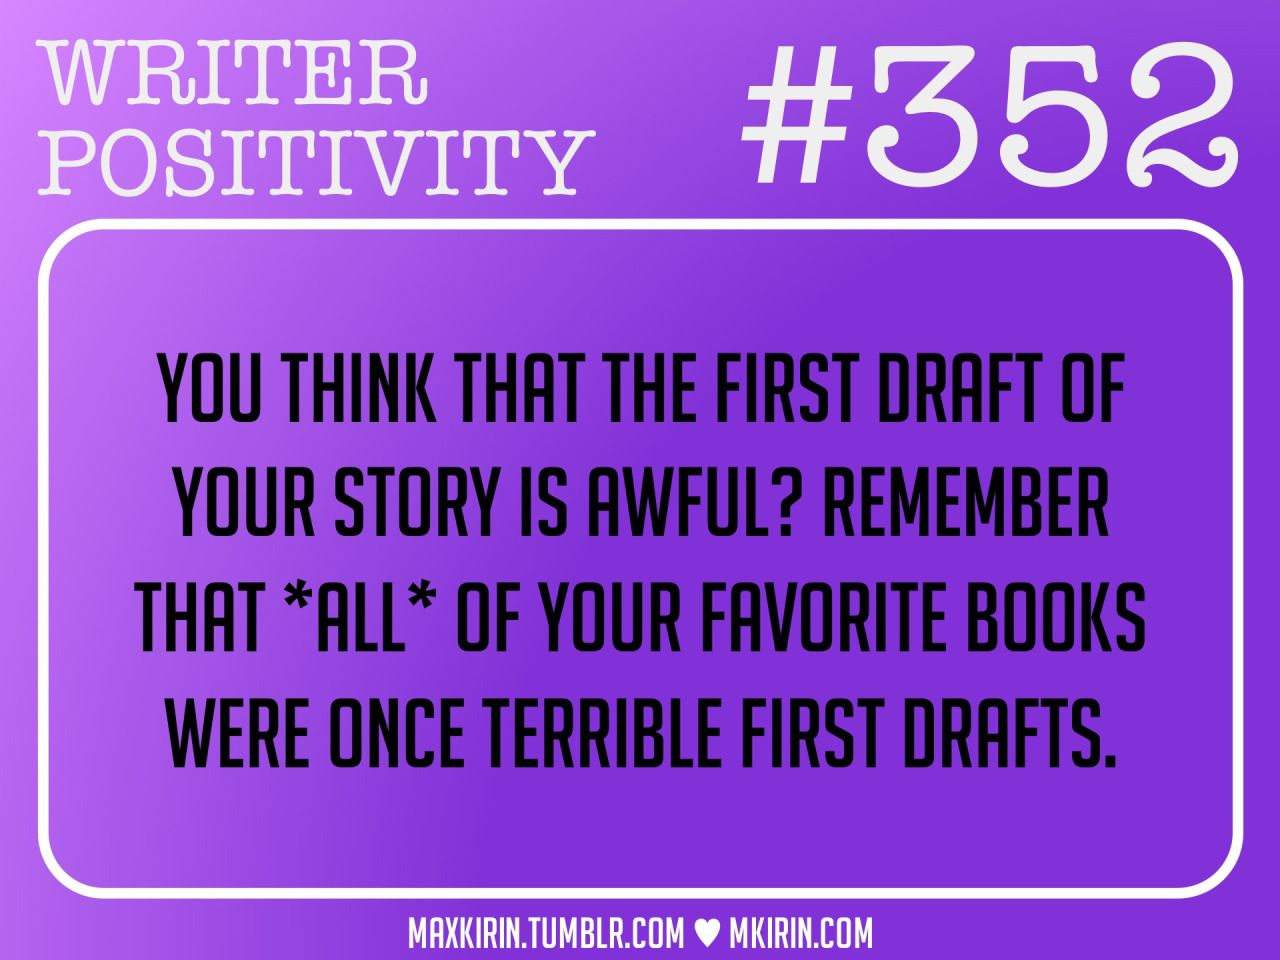 ♥︎ Daily Writer Positivity ♥︎#352You think that the first draft of your story is awful? Remember that *all* of your favorite books were once terrible first drafts.Want more writer inspiration, advice, and prompts? Follow my blog: maxkirin.tumblr.com!